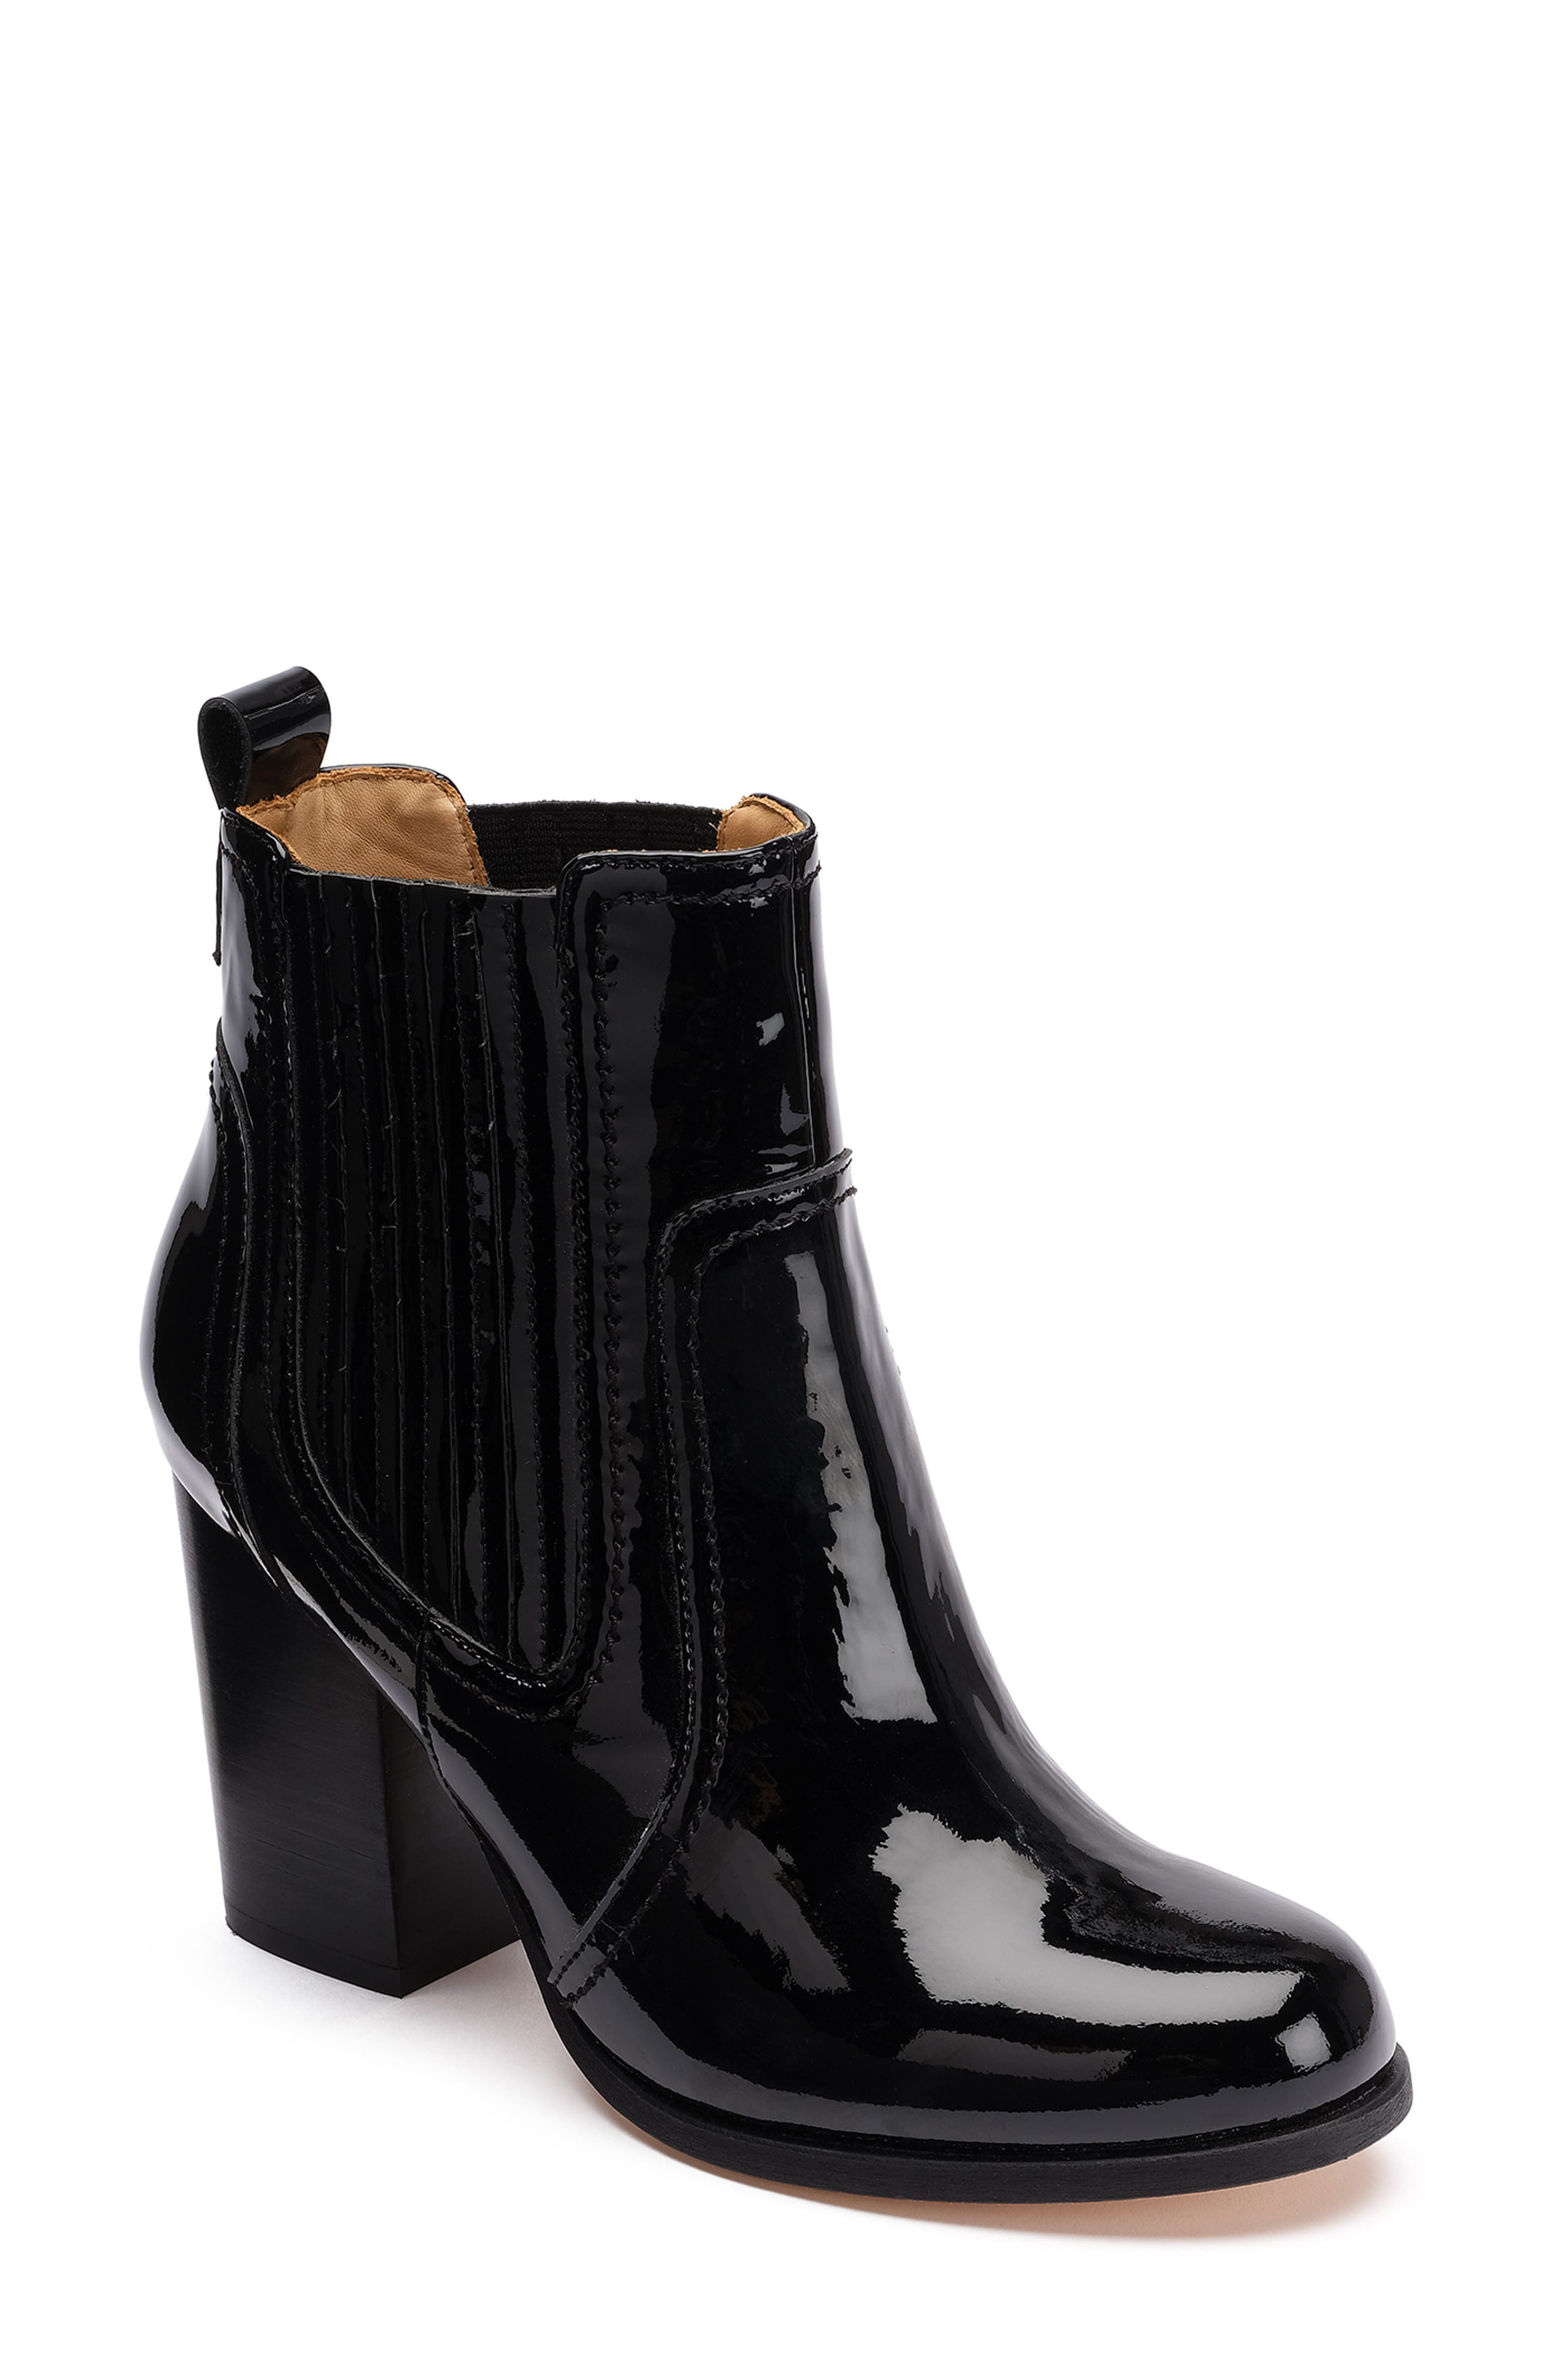 BILL BLASS Bianca Bootie in Black/ Patent Leather